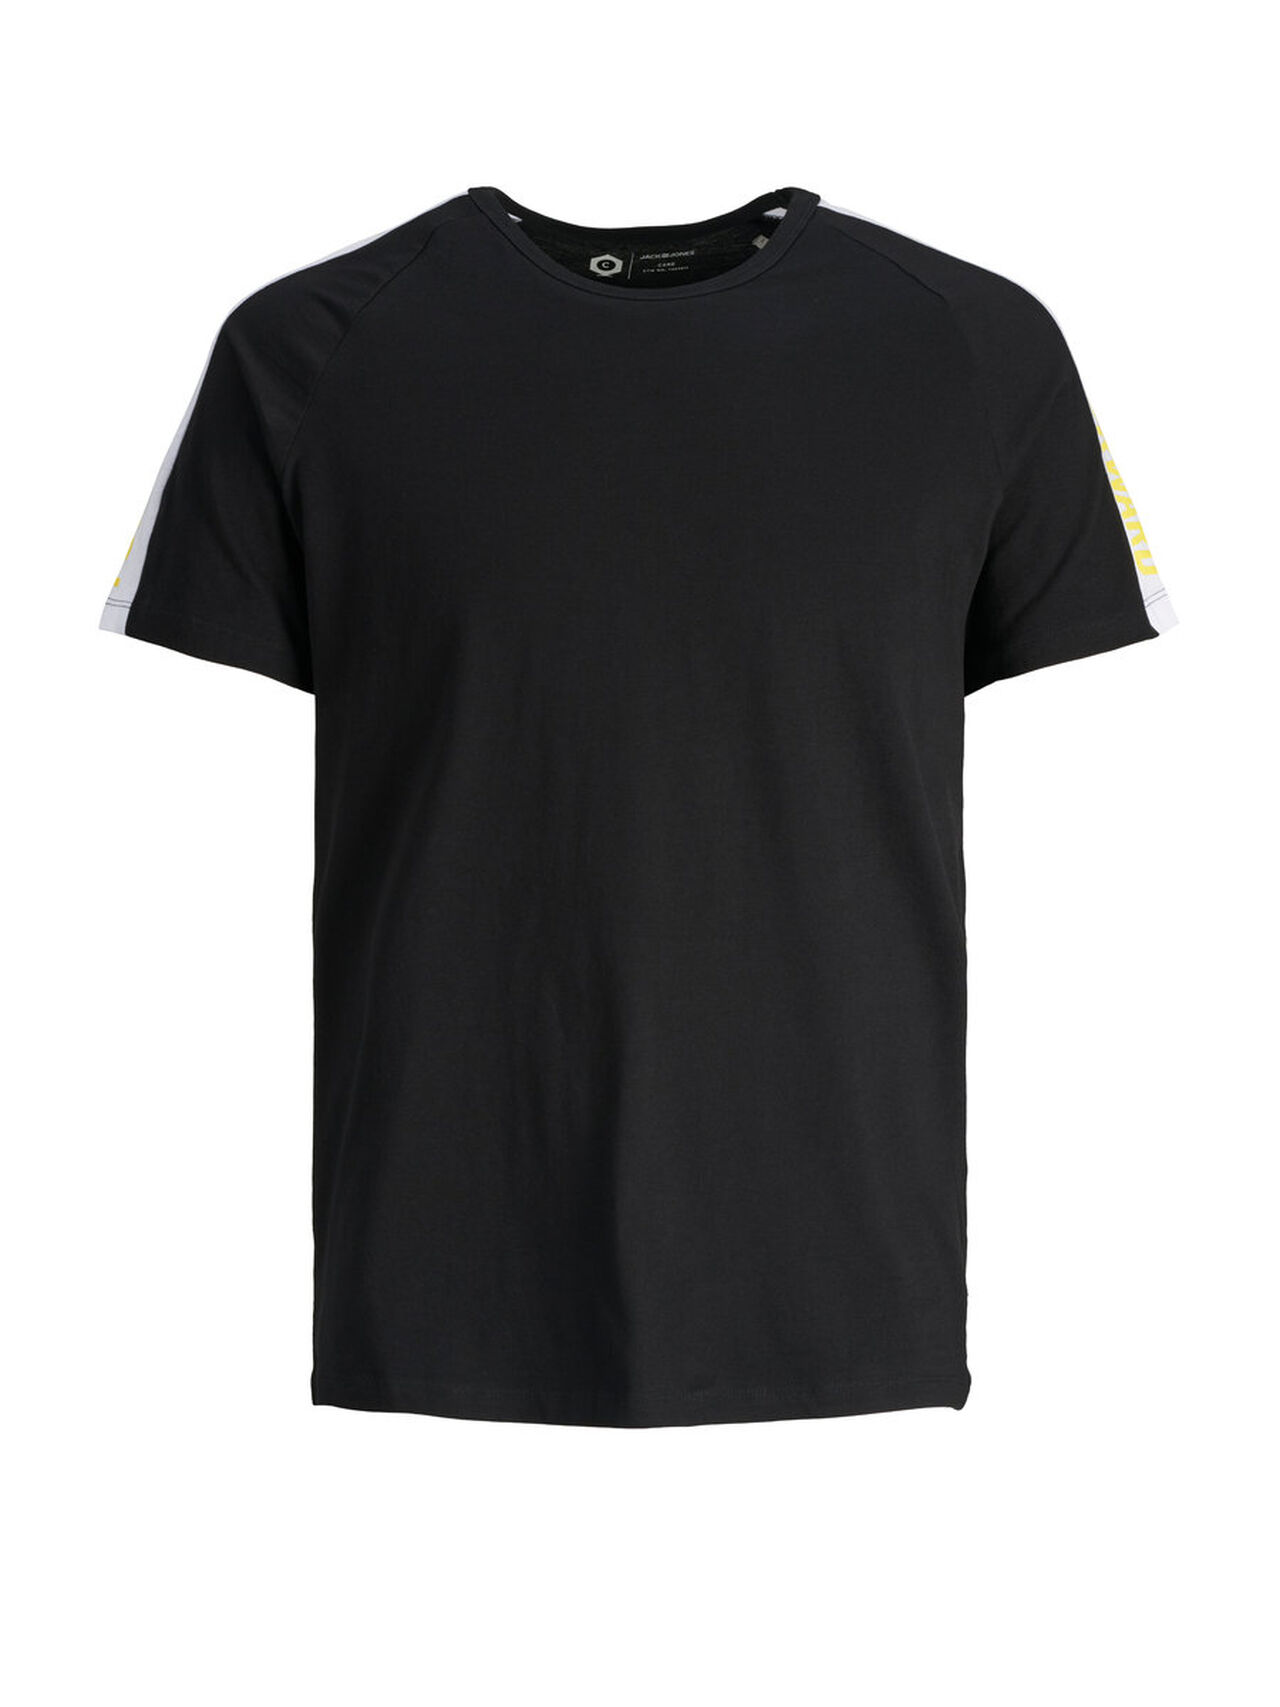 JACK & JONES Crew Neck T-shirt Men Black